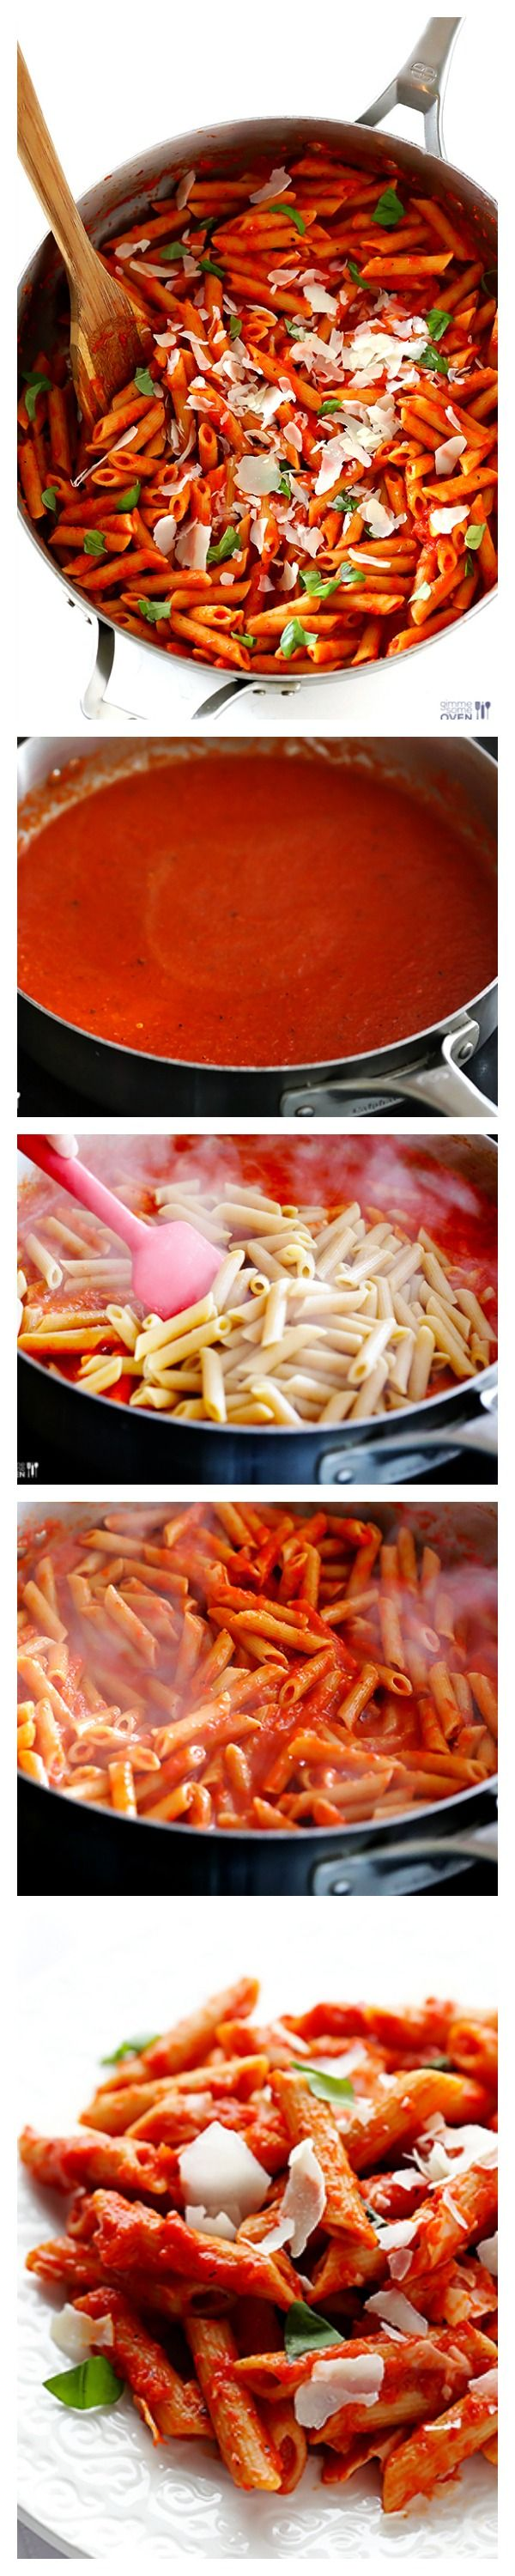 Pasta with Roasted Red Pepper Sauce | Recipe